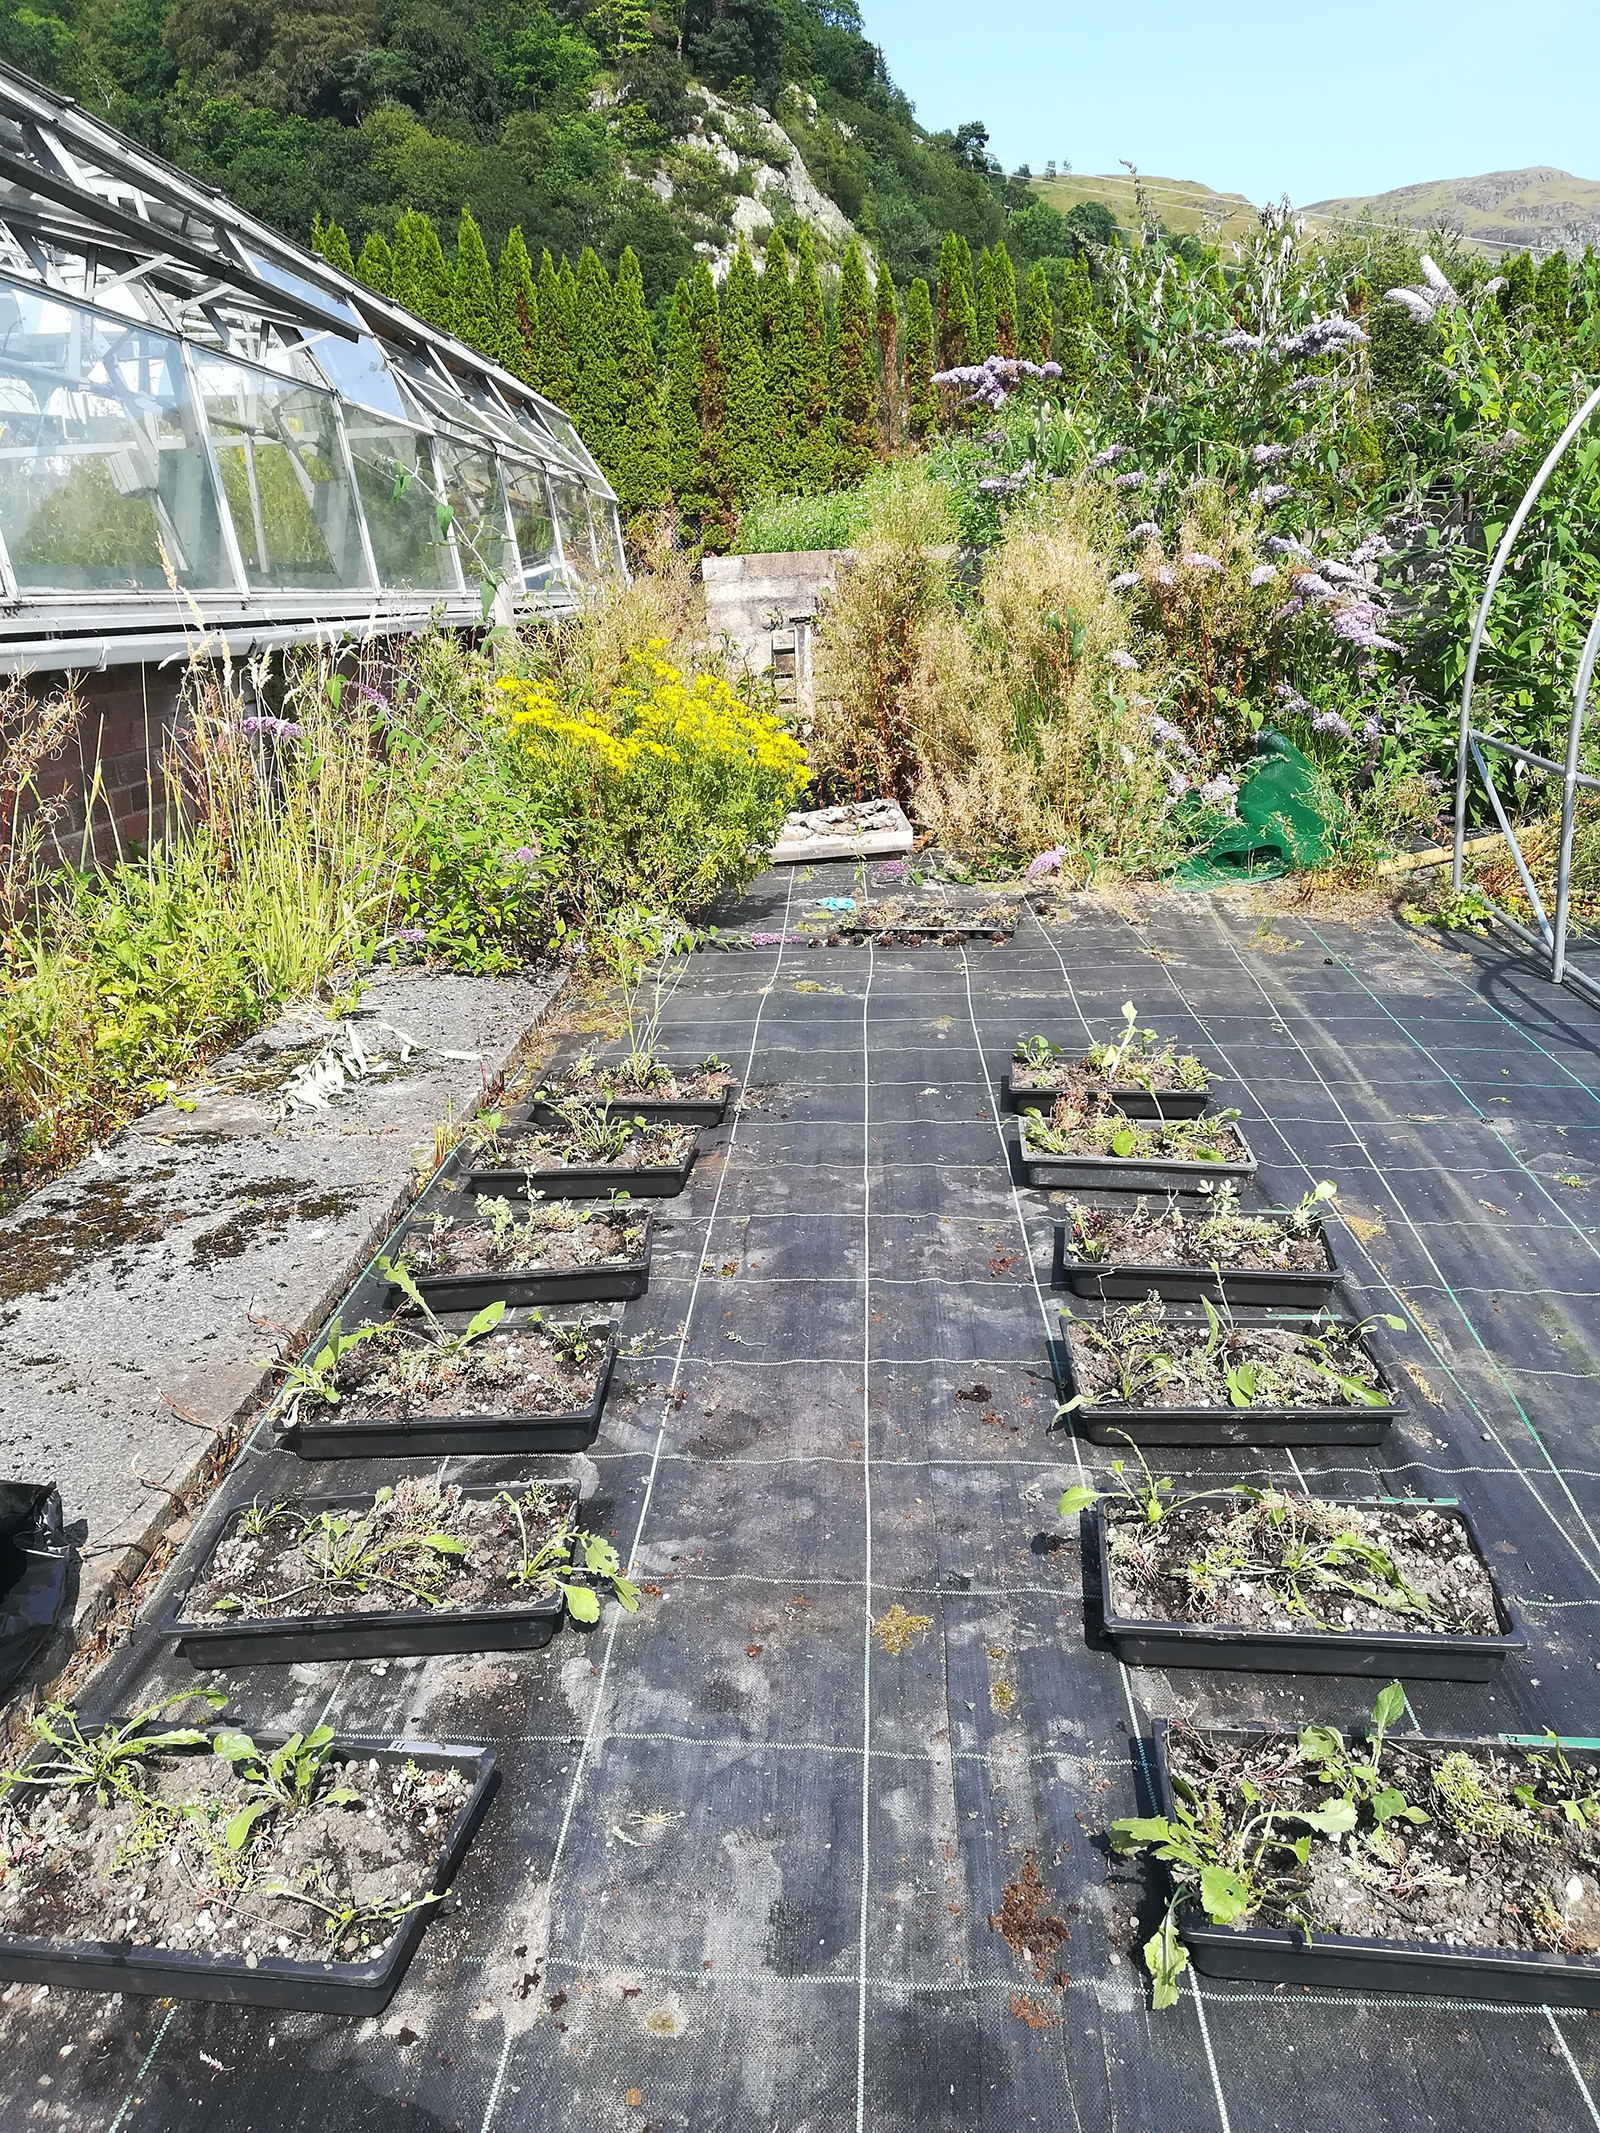 Two rows of six trays each in a garden